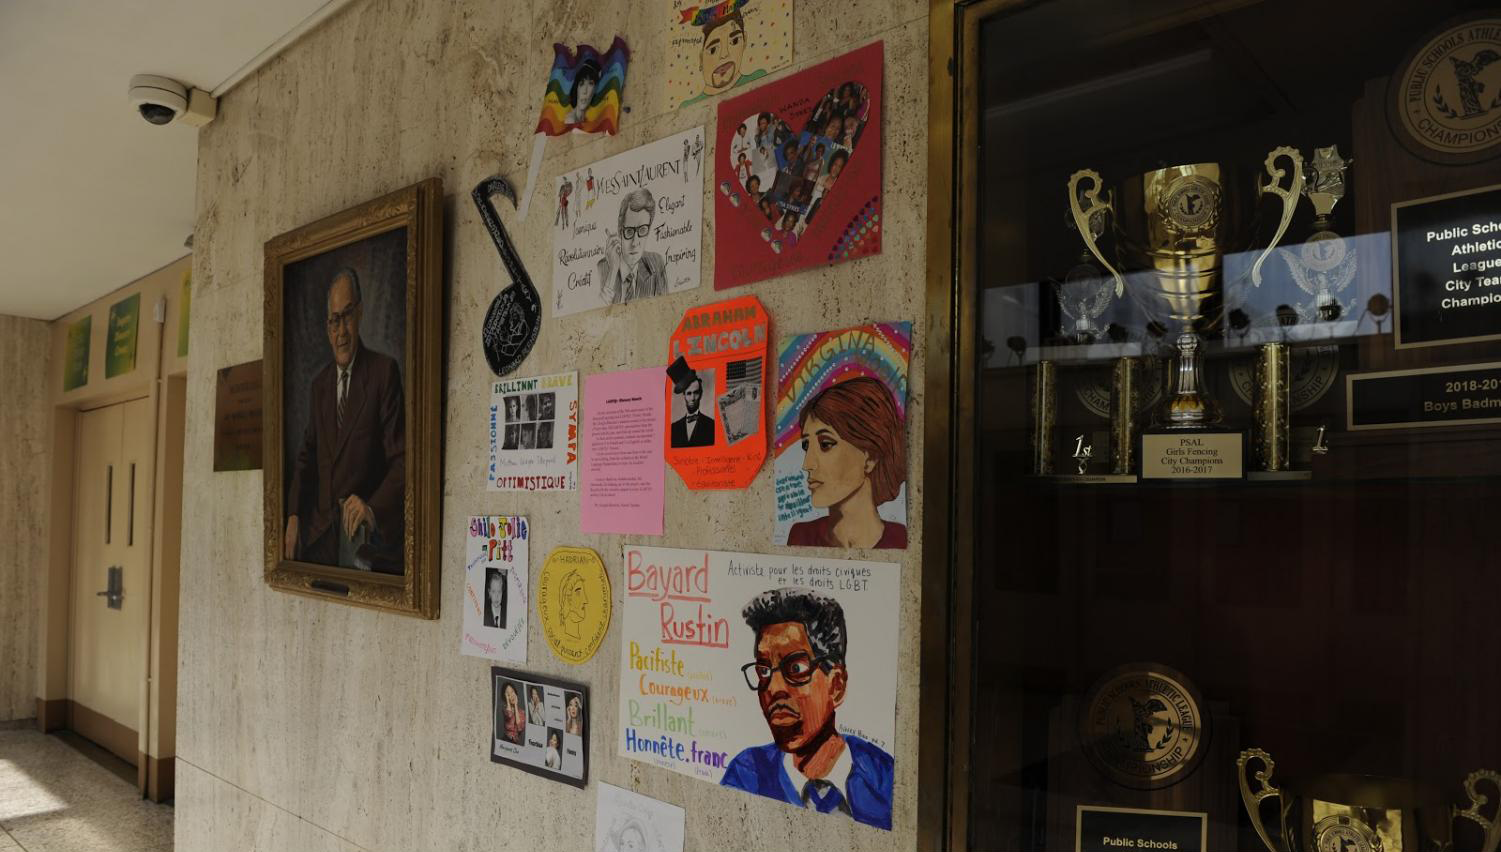 Mr. Blessent's LGBTQ+ icon arts project is displayed throughout the hallways; he seeks to promote a more inclusive school environment.